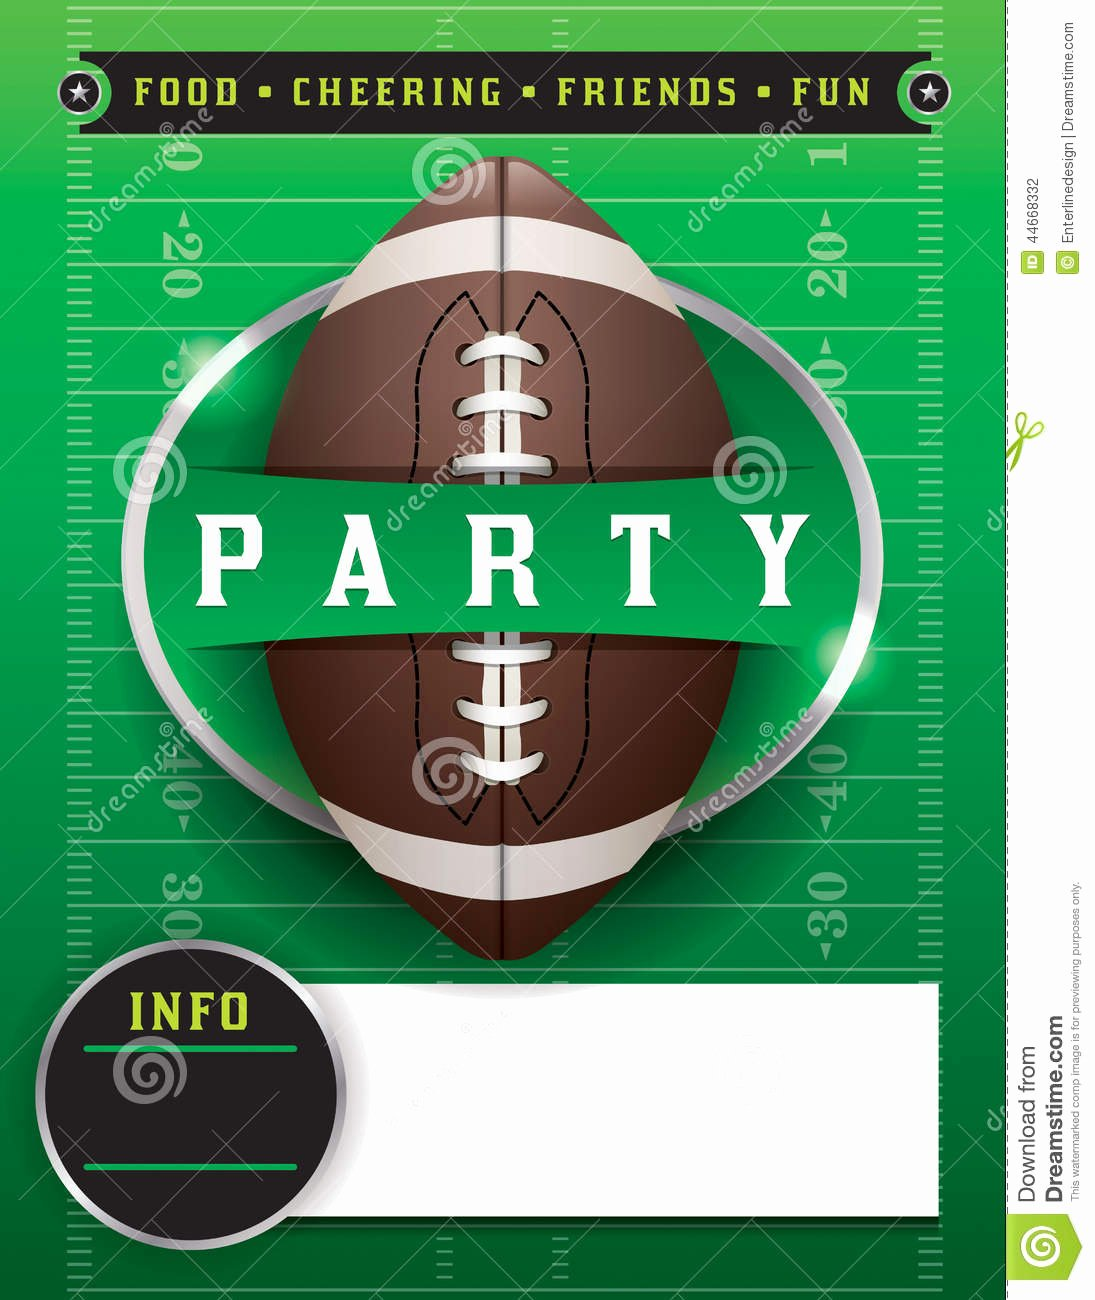 Football Party Invitation Template Luxury American Football Party Template Illustration Stock Vector